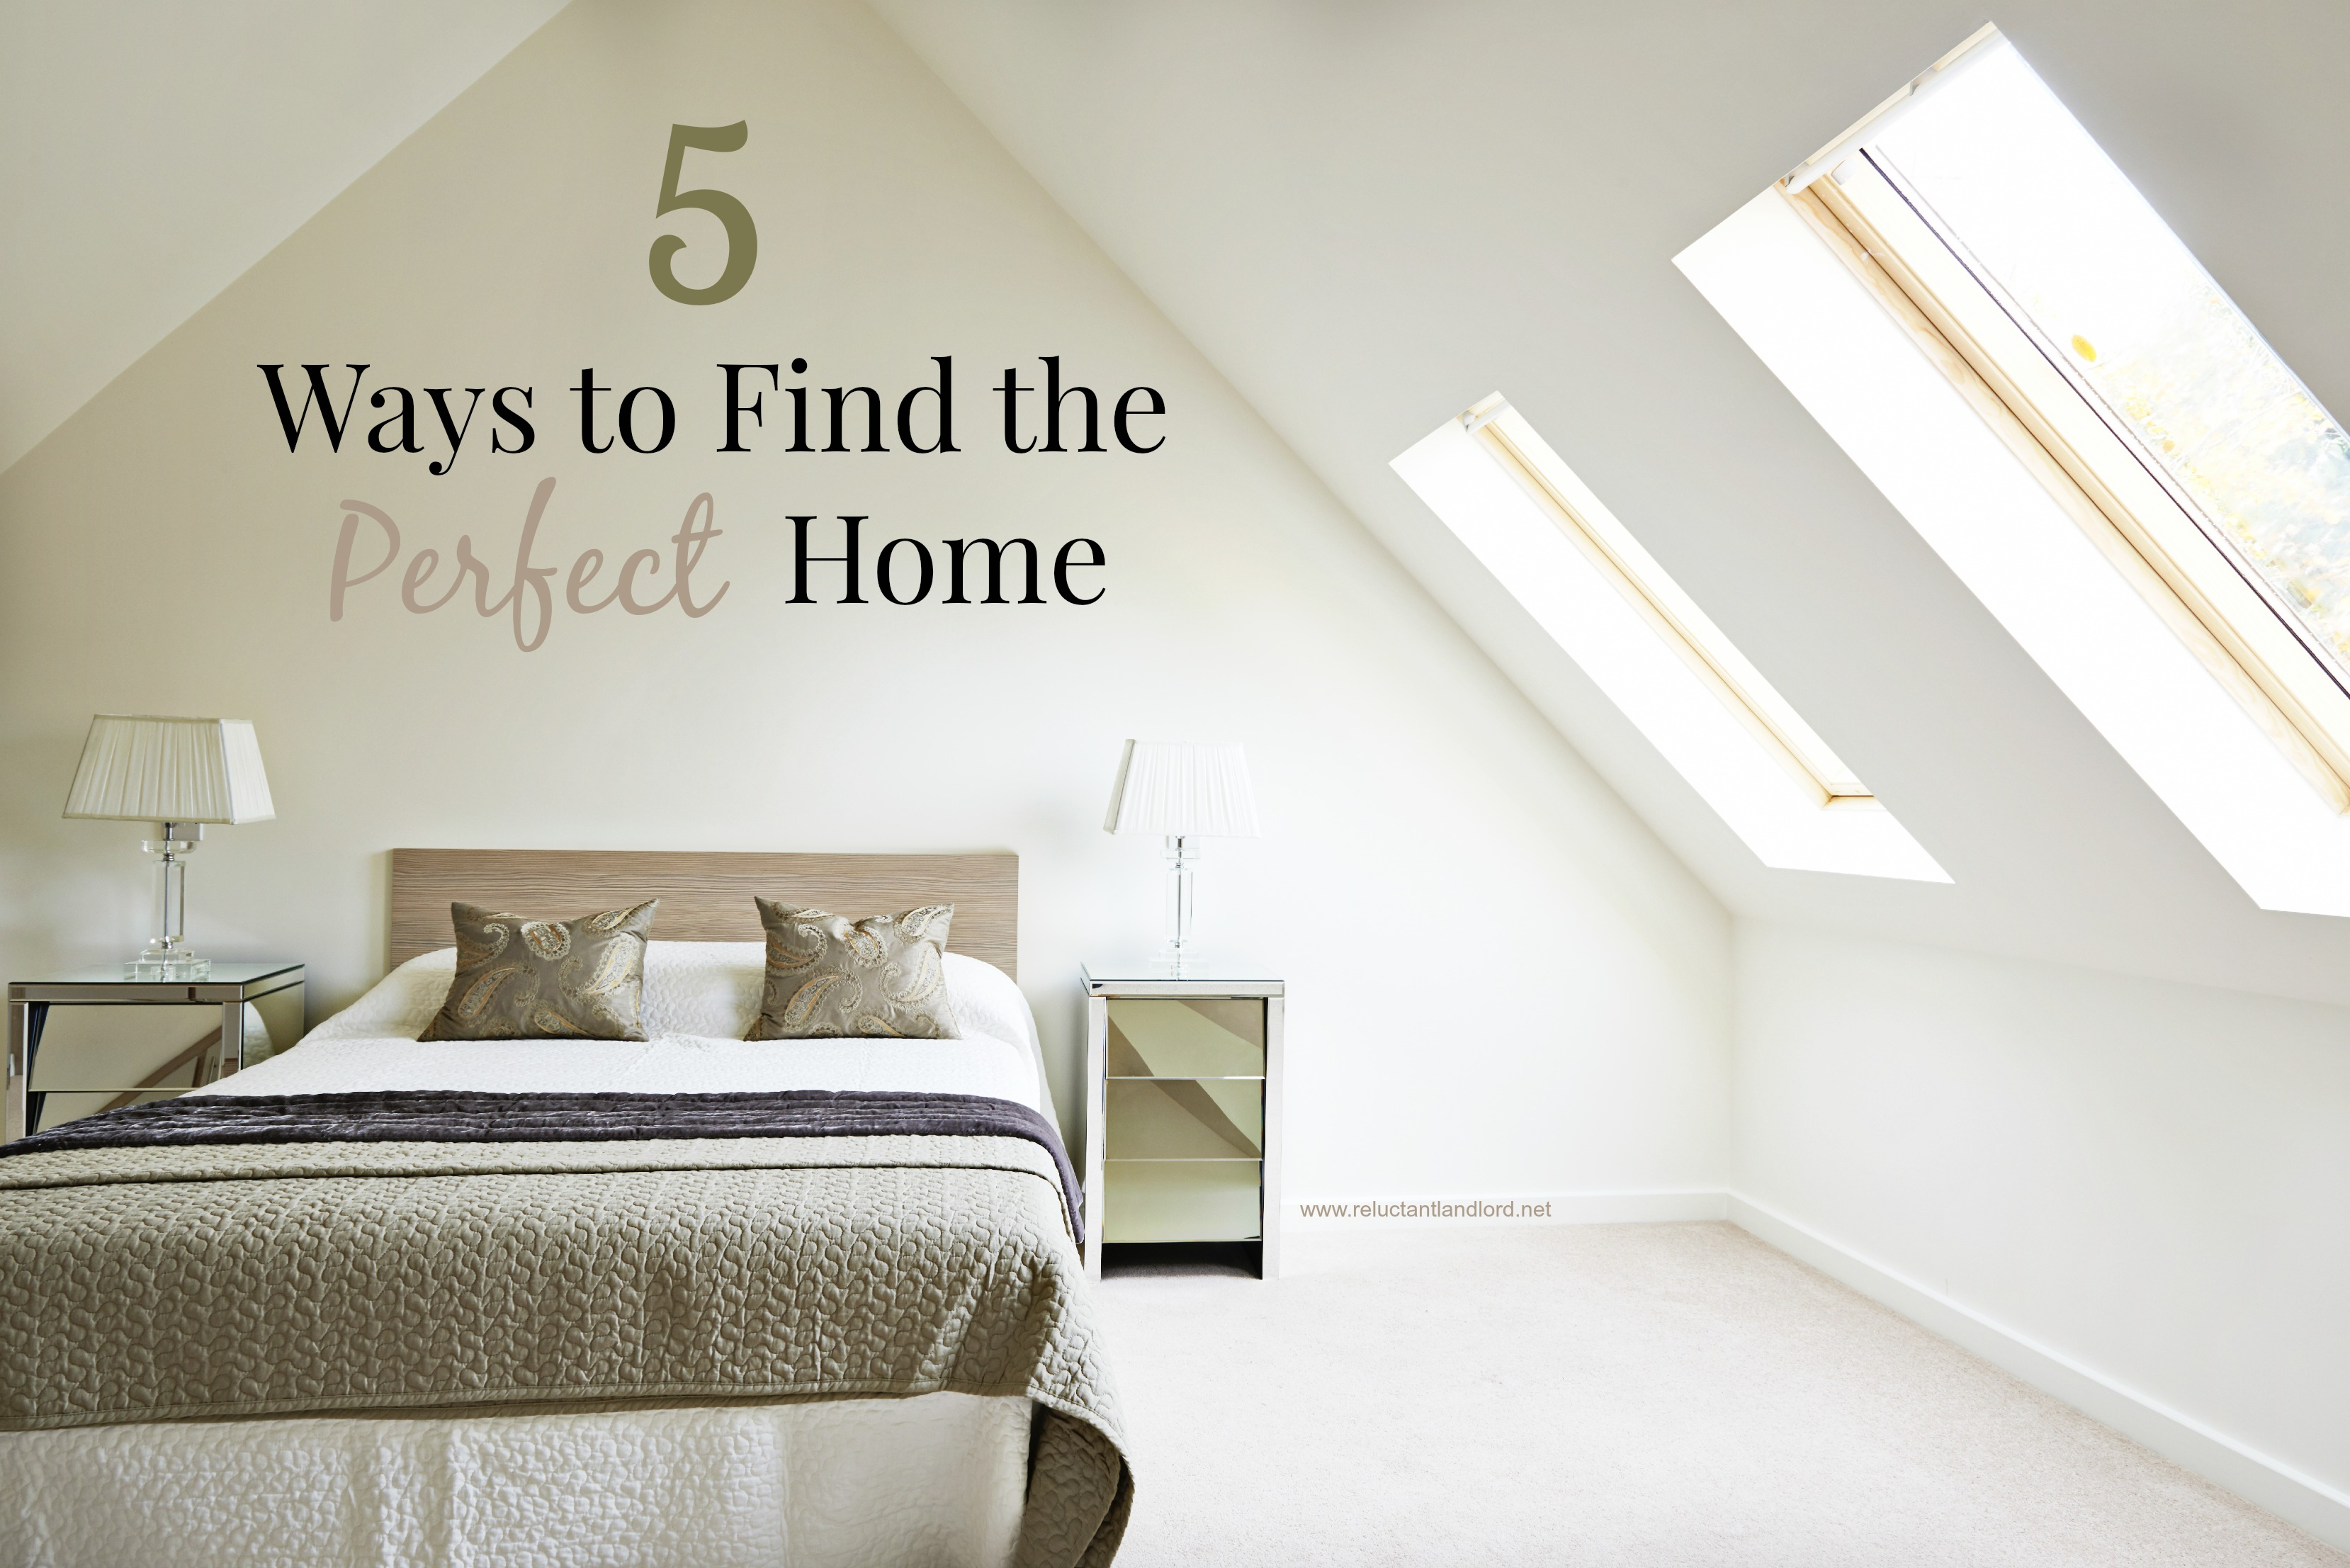 5 ways to find the perfect home the reluctant landlord for Find the perfect house